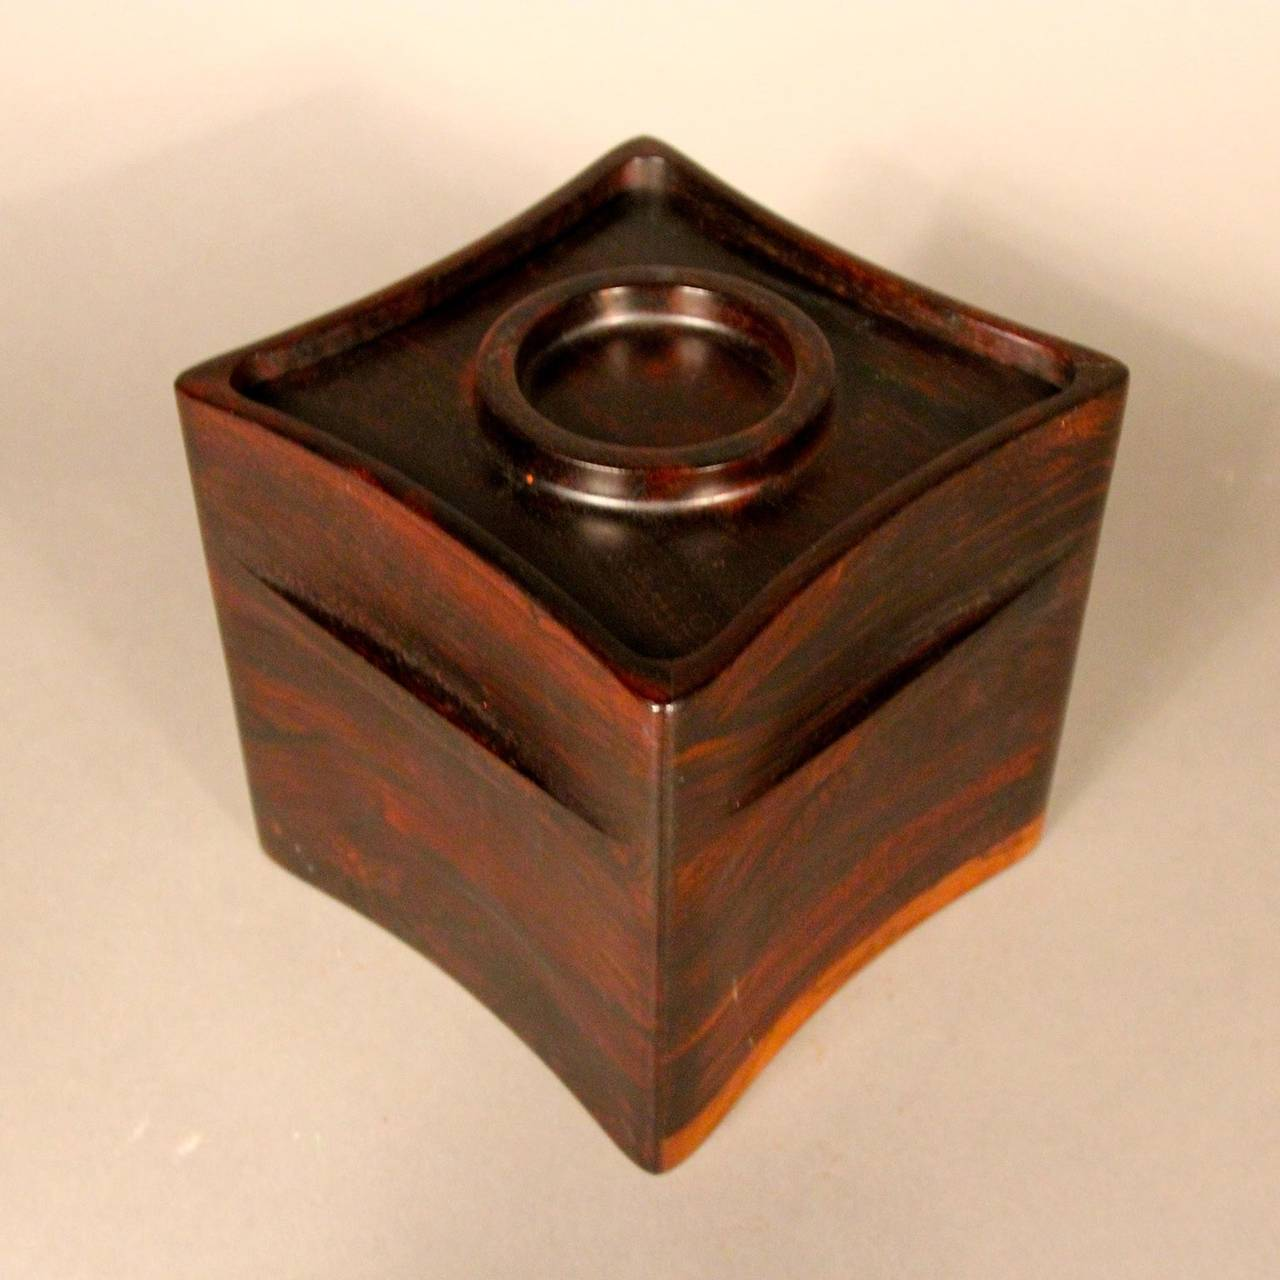 Rosewood ice bucket from the